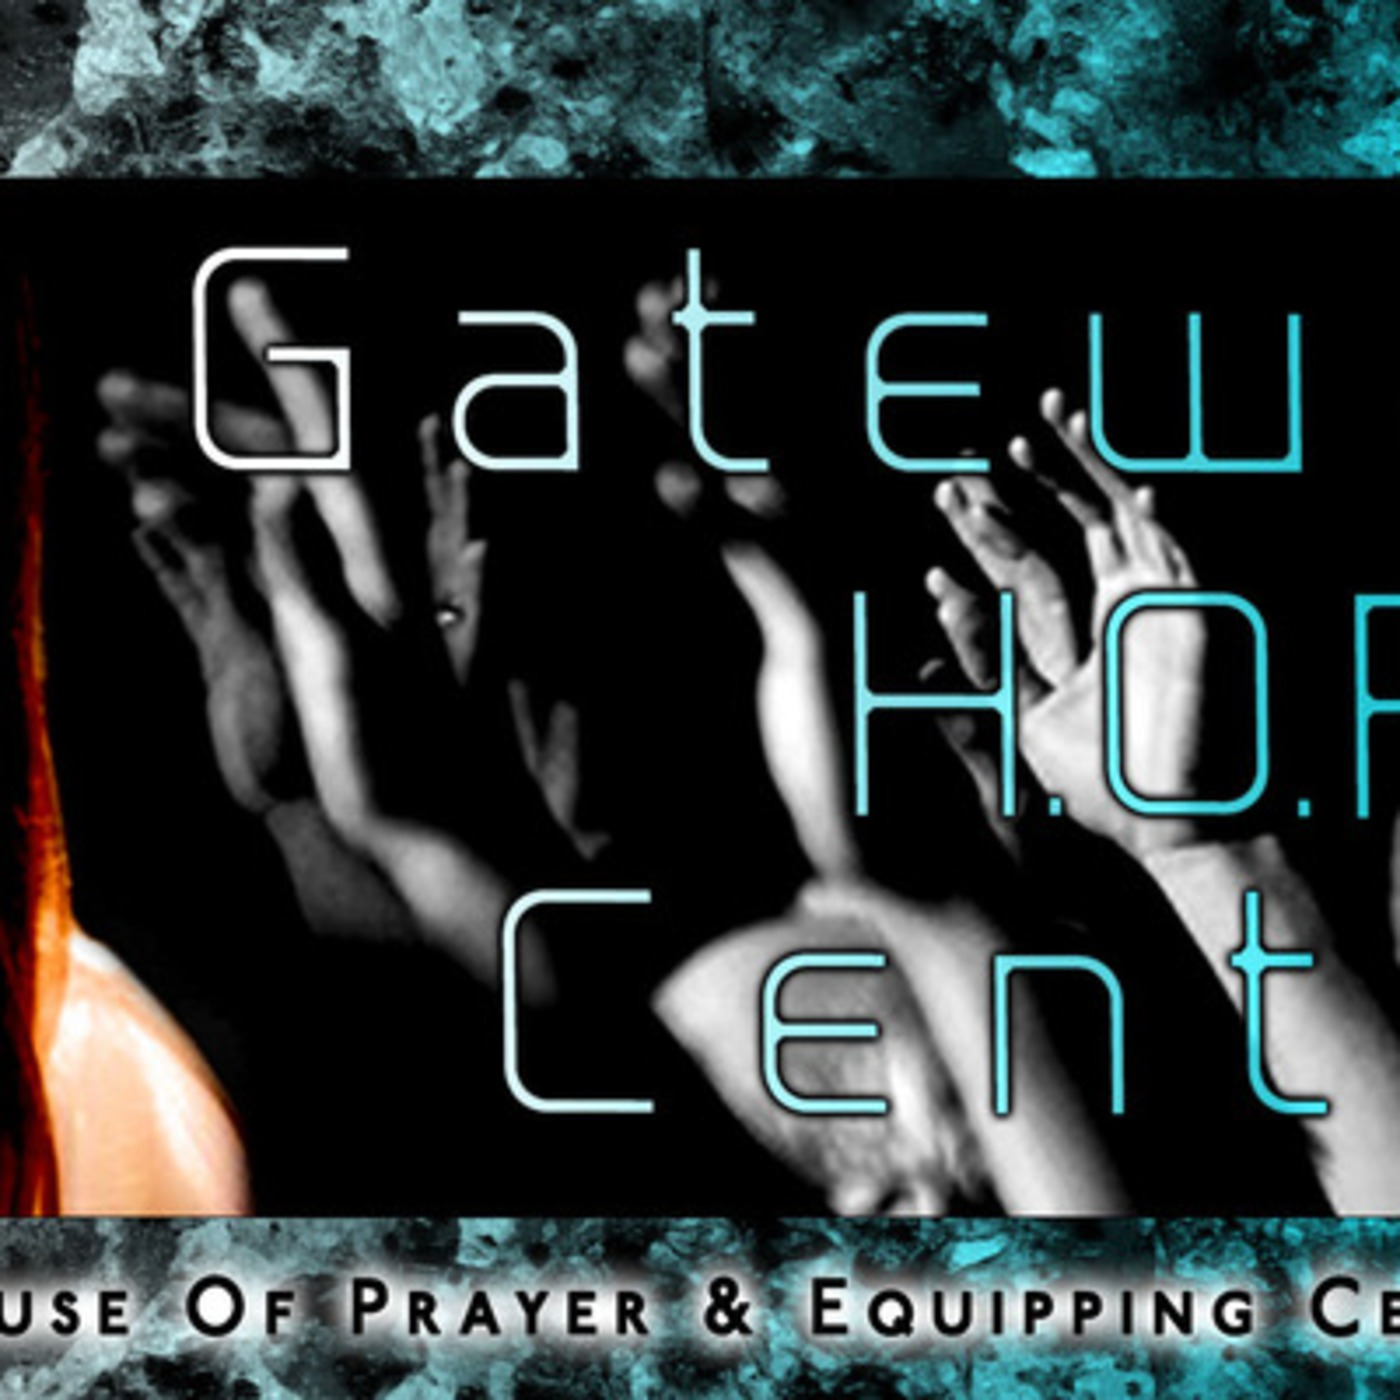 Gateway H.O.P.E. Center